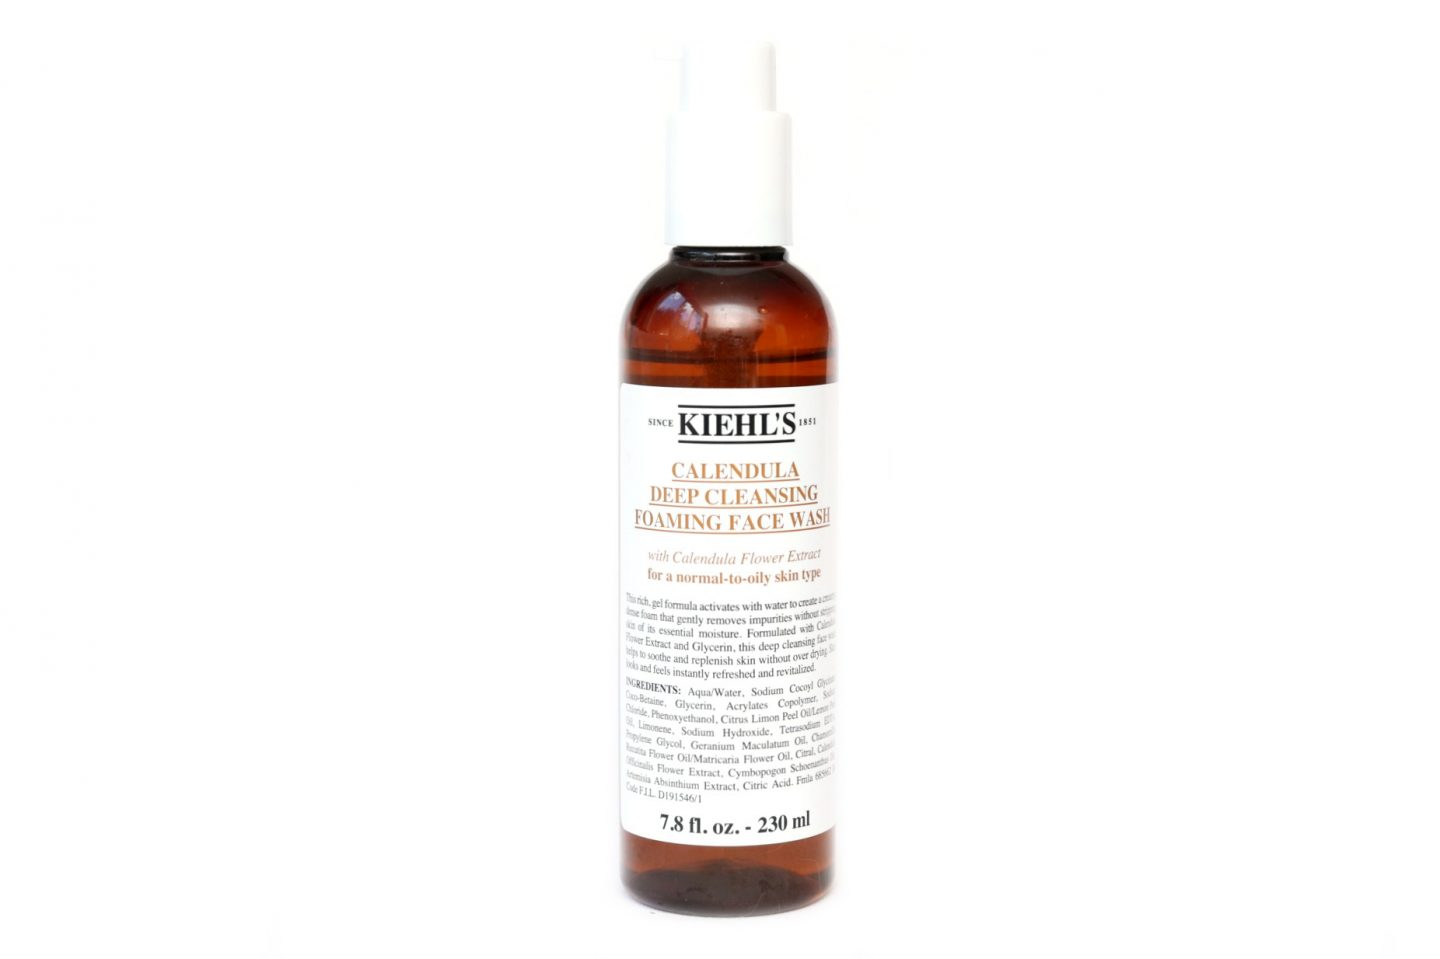 Kiehl's Calendula Deep Cleansing Foaming Face Wash Review